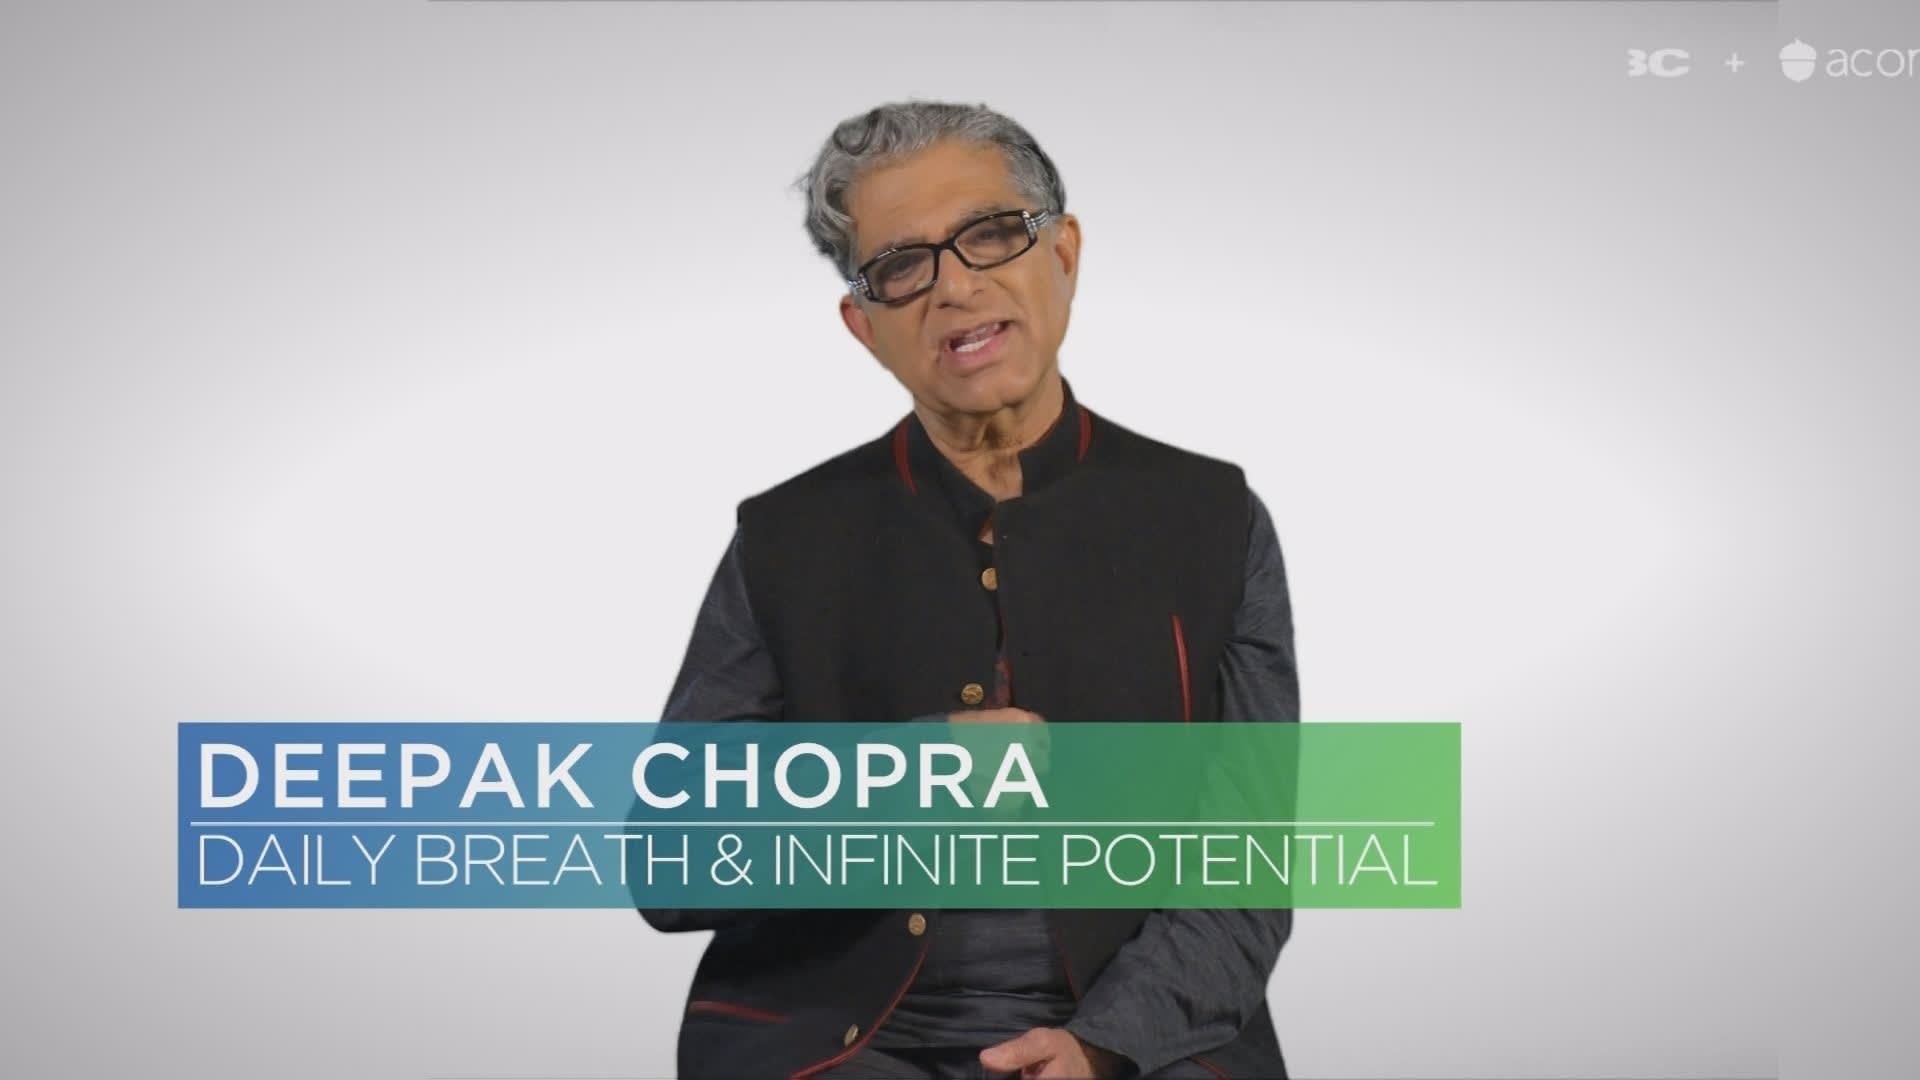 Deepak Chopra: How to stay calm and avoid impulsive actions in a volatile market